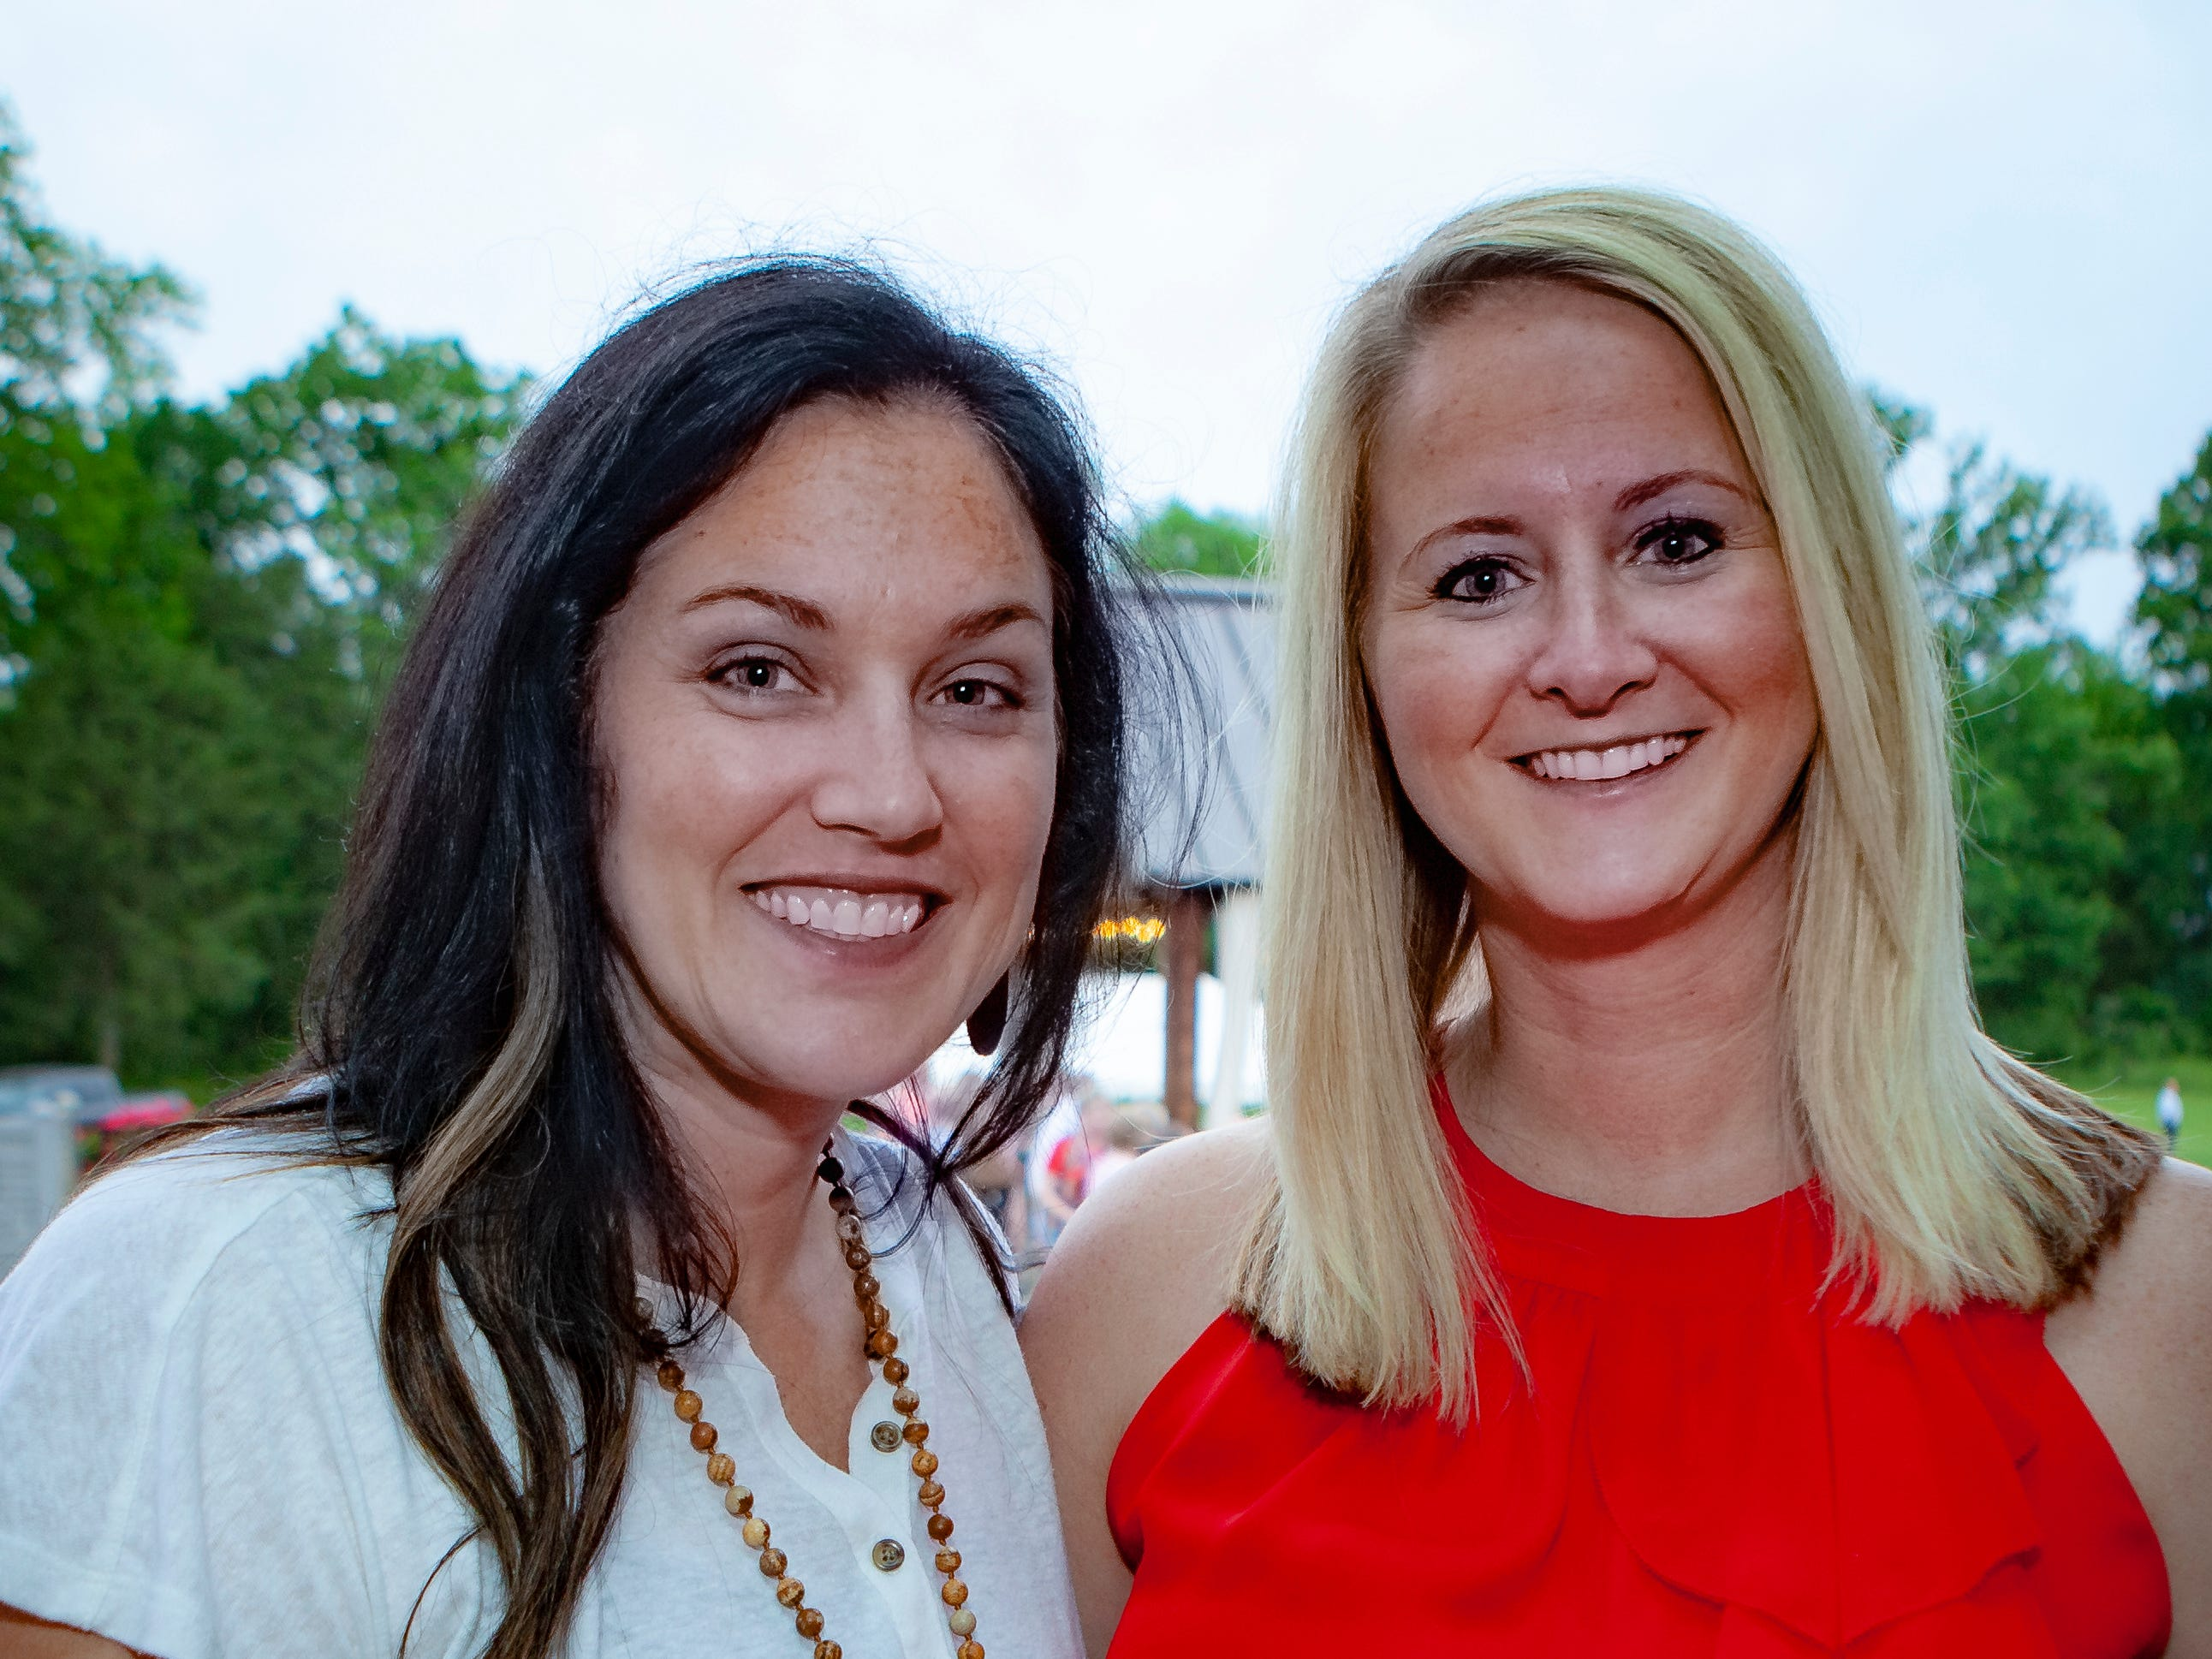 Lauren Fluharty and Barbara Garrett enjoyed a Cajun feast under the stars at United Way's Red, White and Bayou, held Friday, May 10, 2019 at the home of Jimmy & Nikkole Aho.